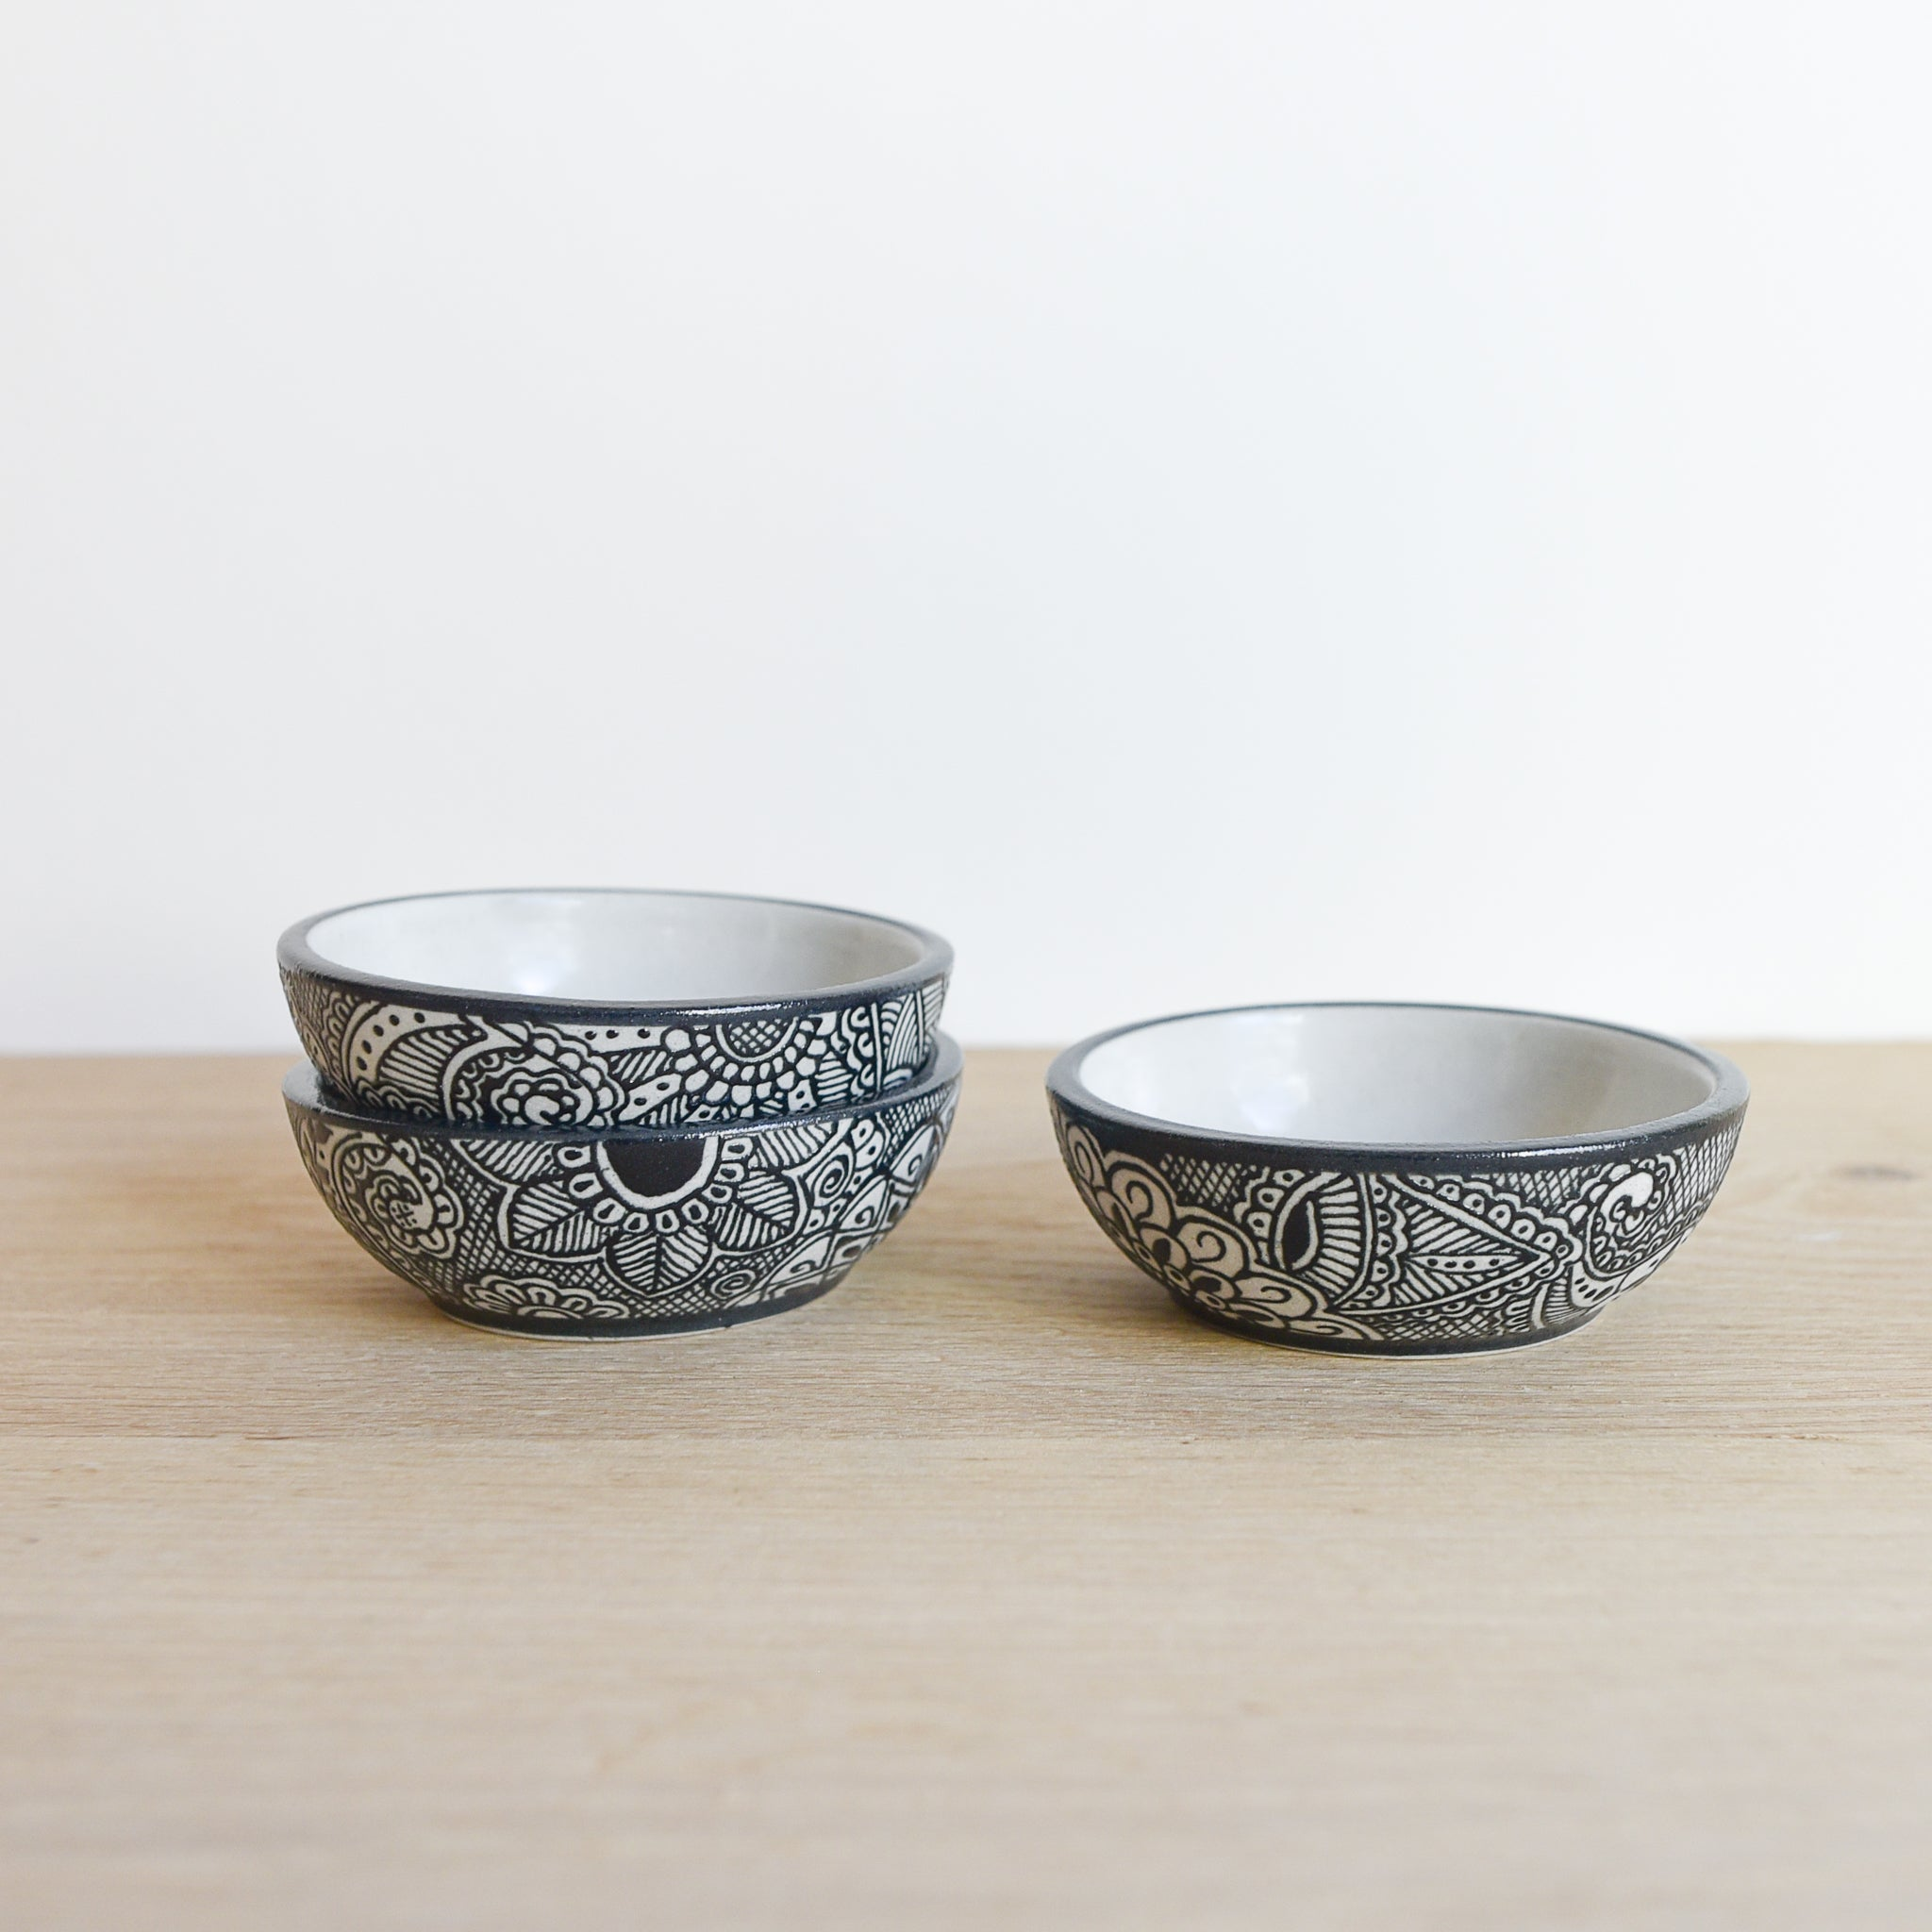 Small hand-painted black and ivory clay talavera style bowls made in Mexico.